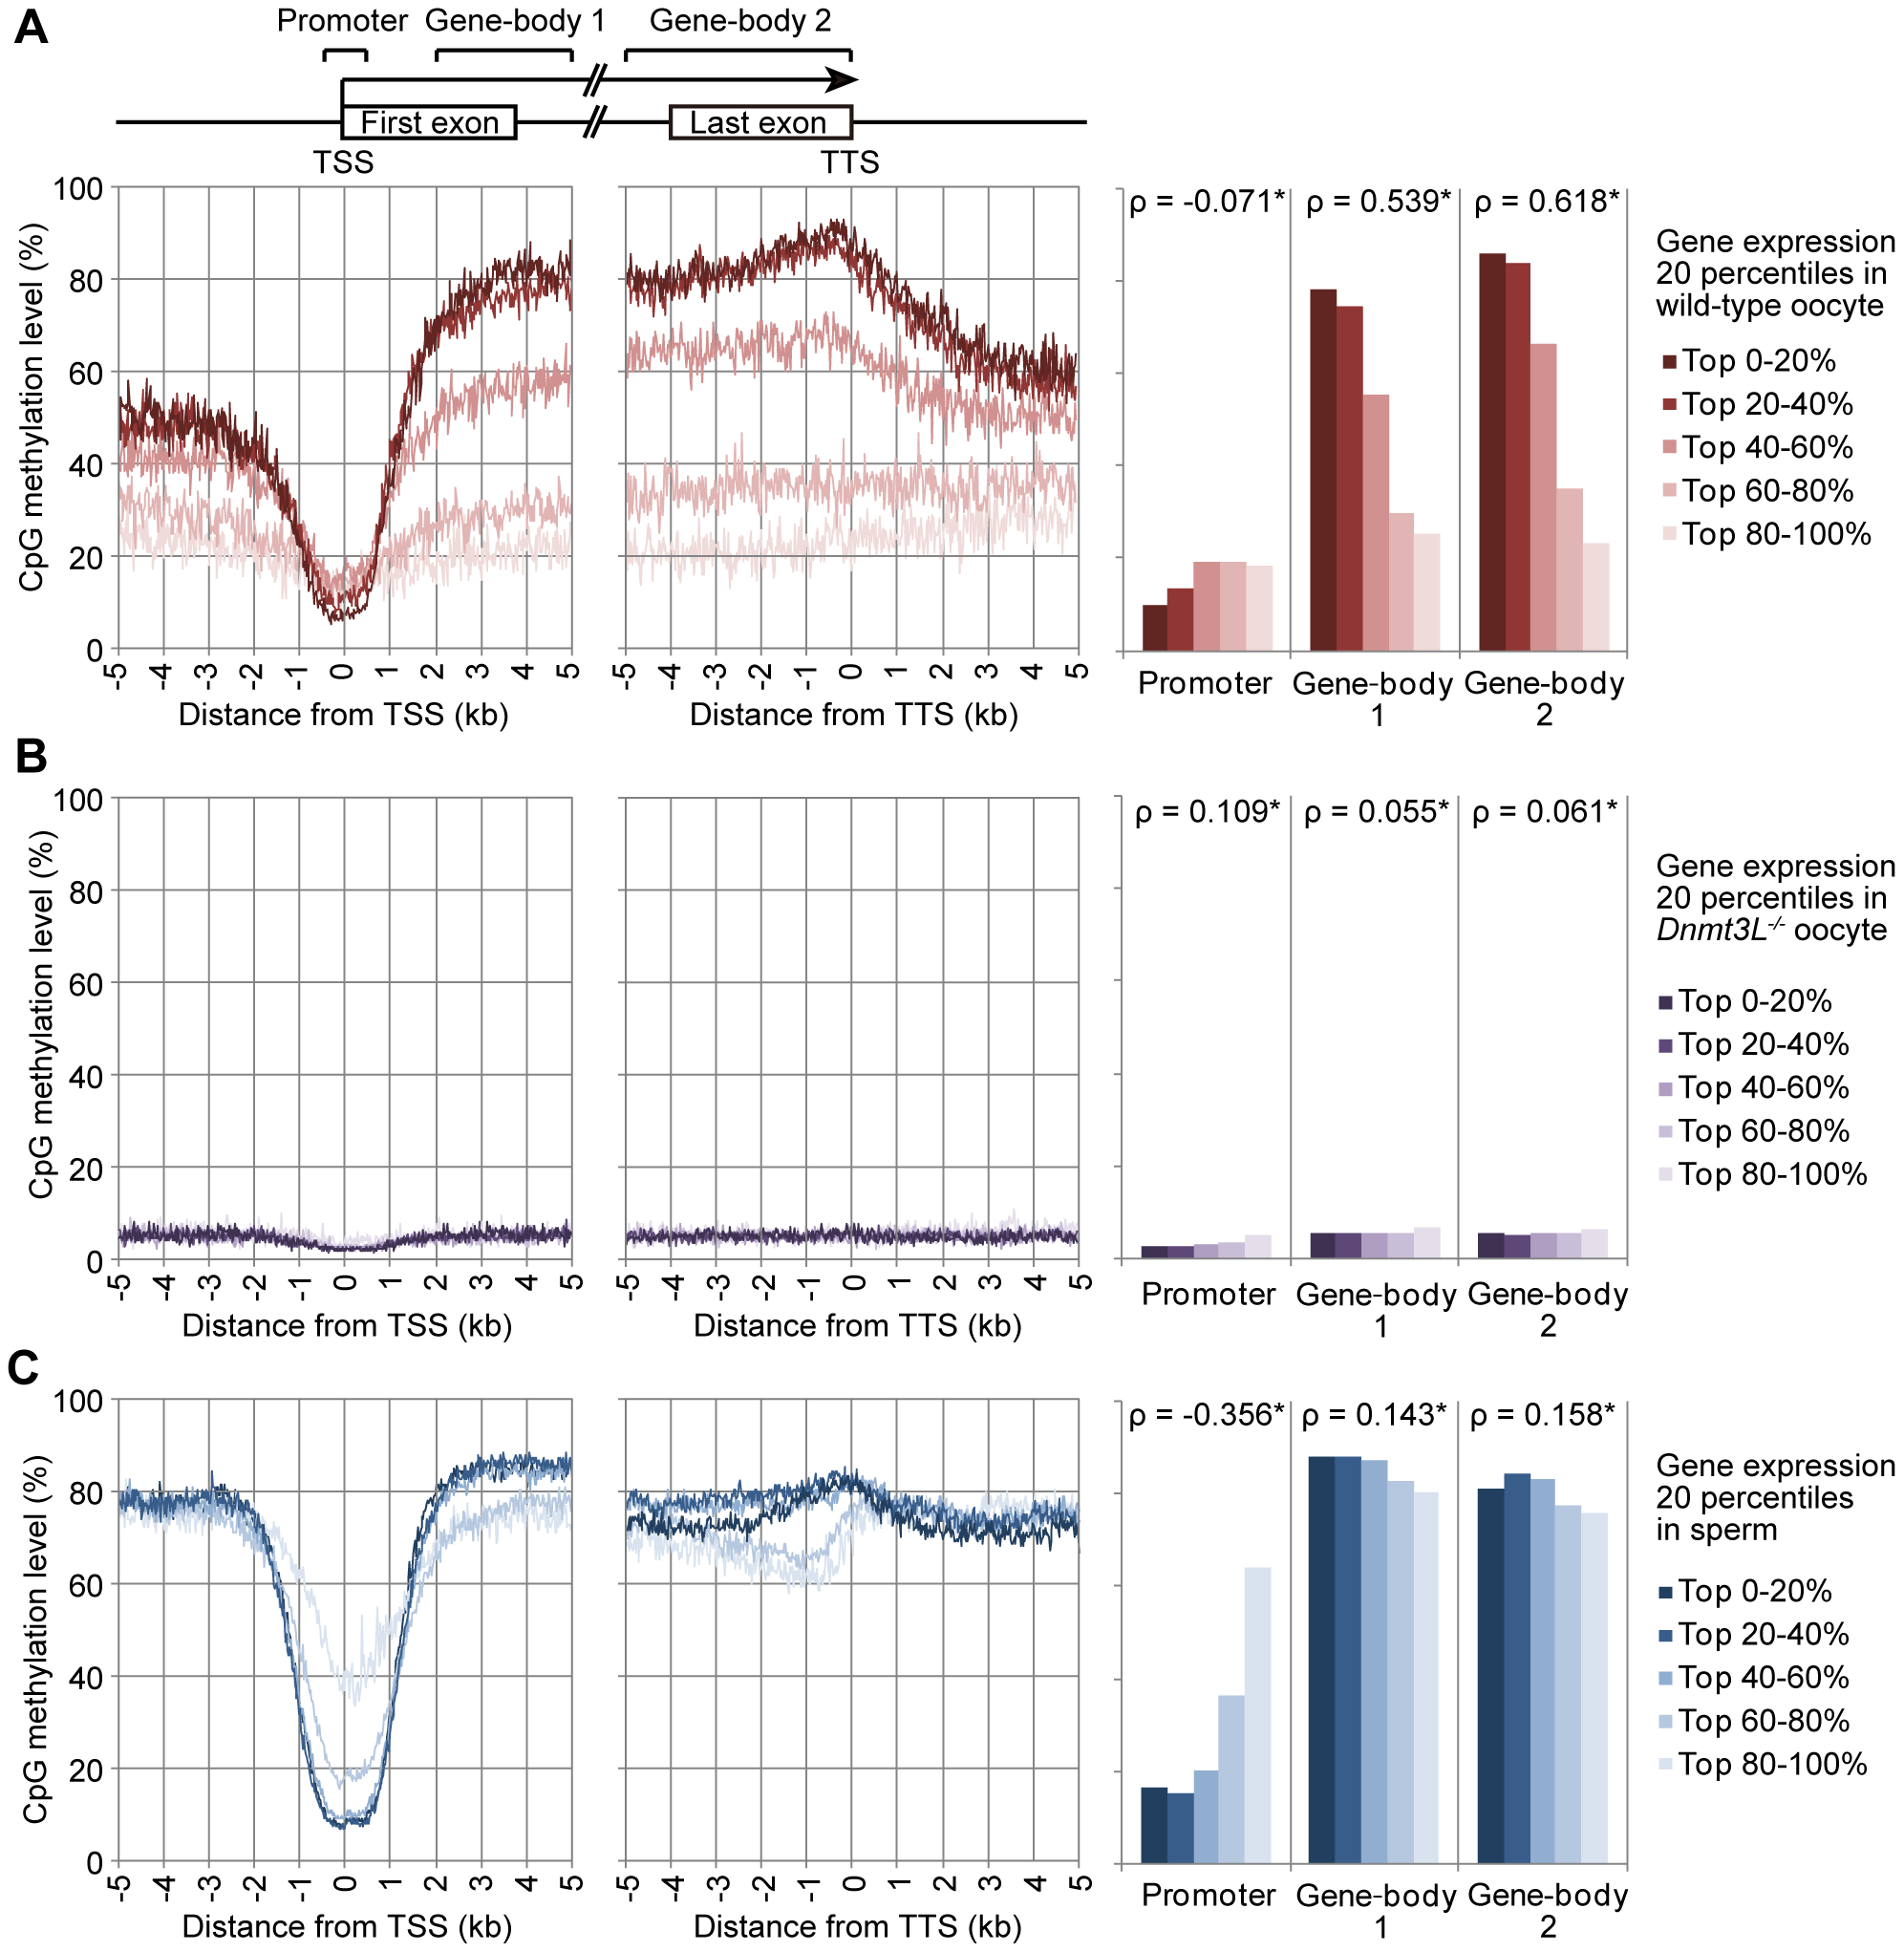 Relationship between gene expression and methylation in promoter and gene-body regions in mouse germ cells.